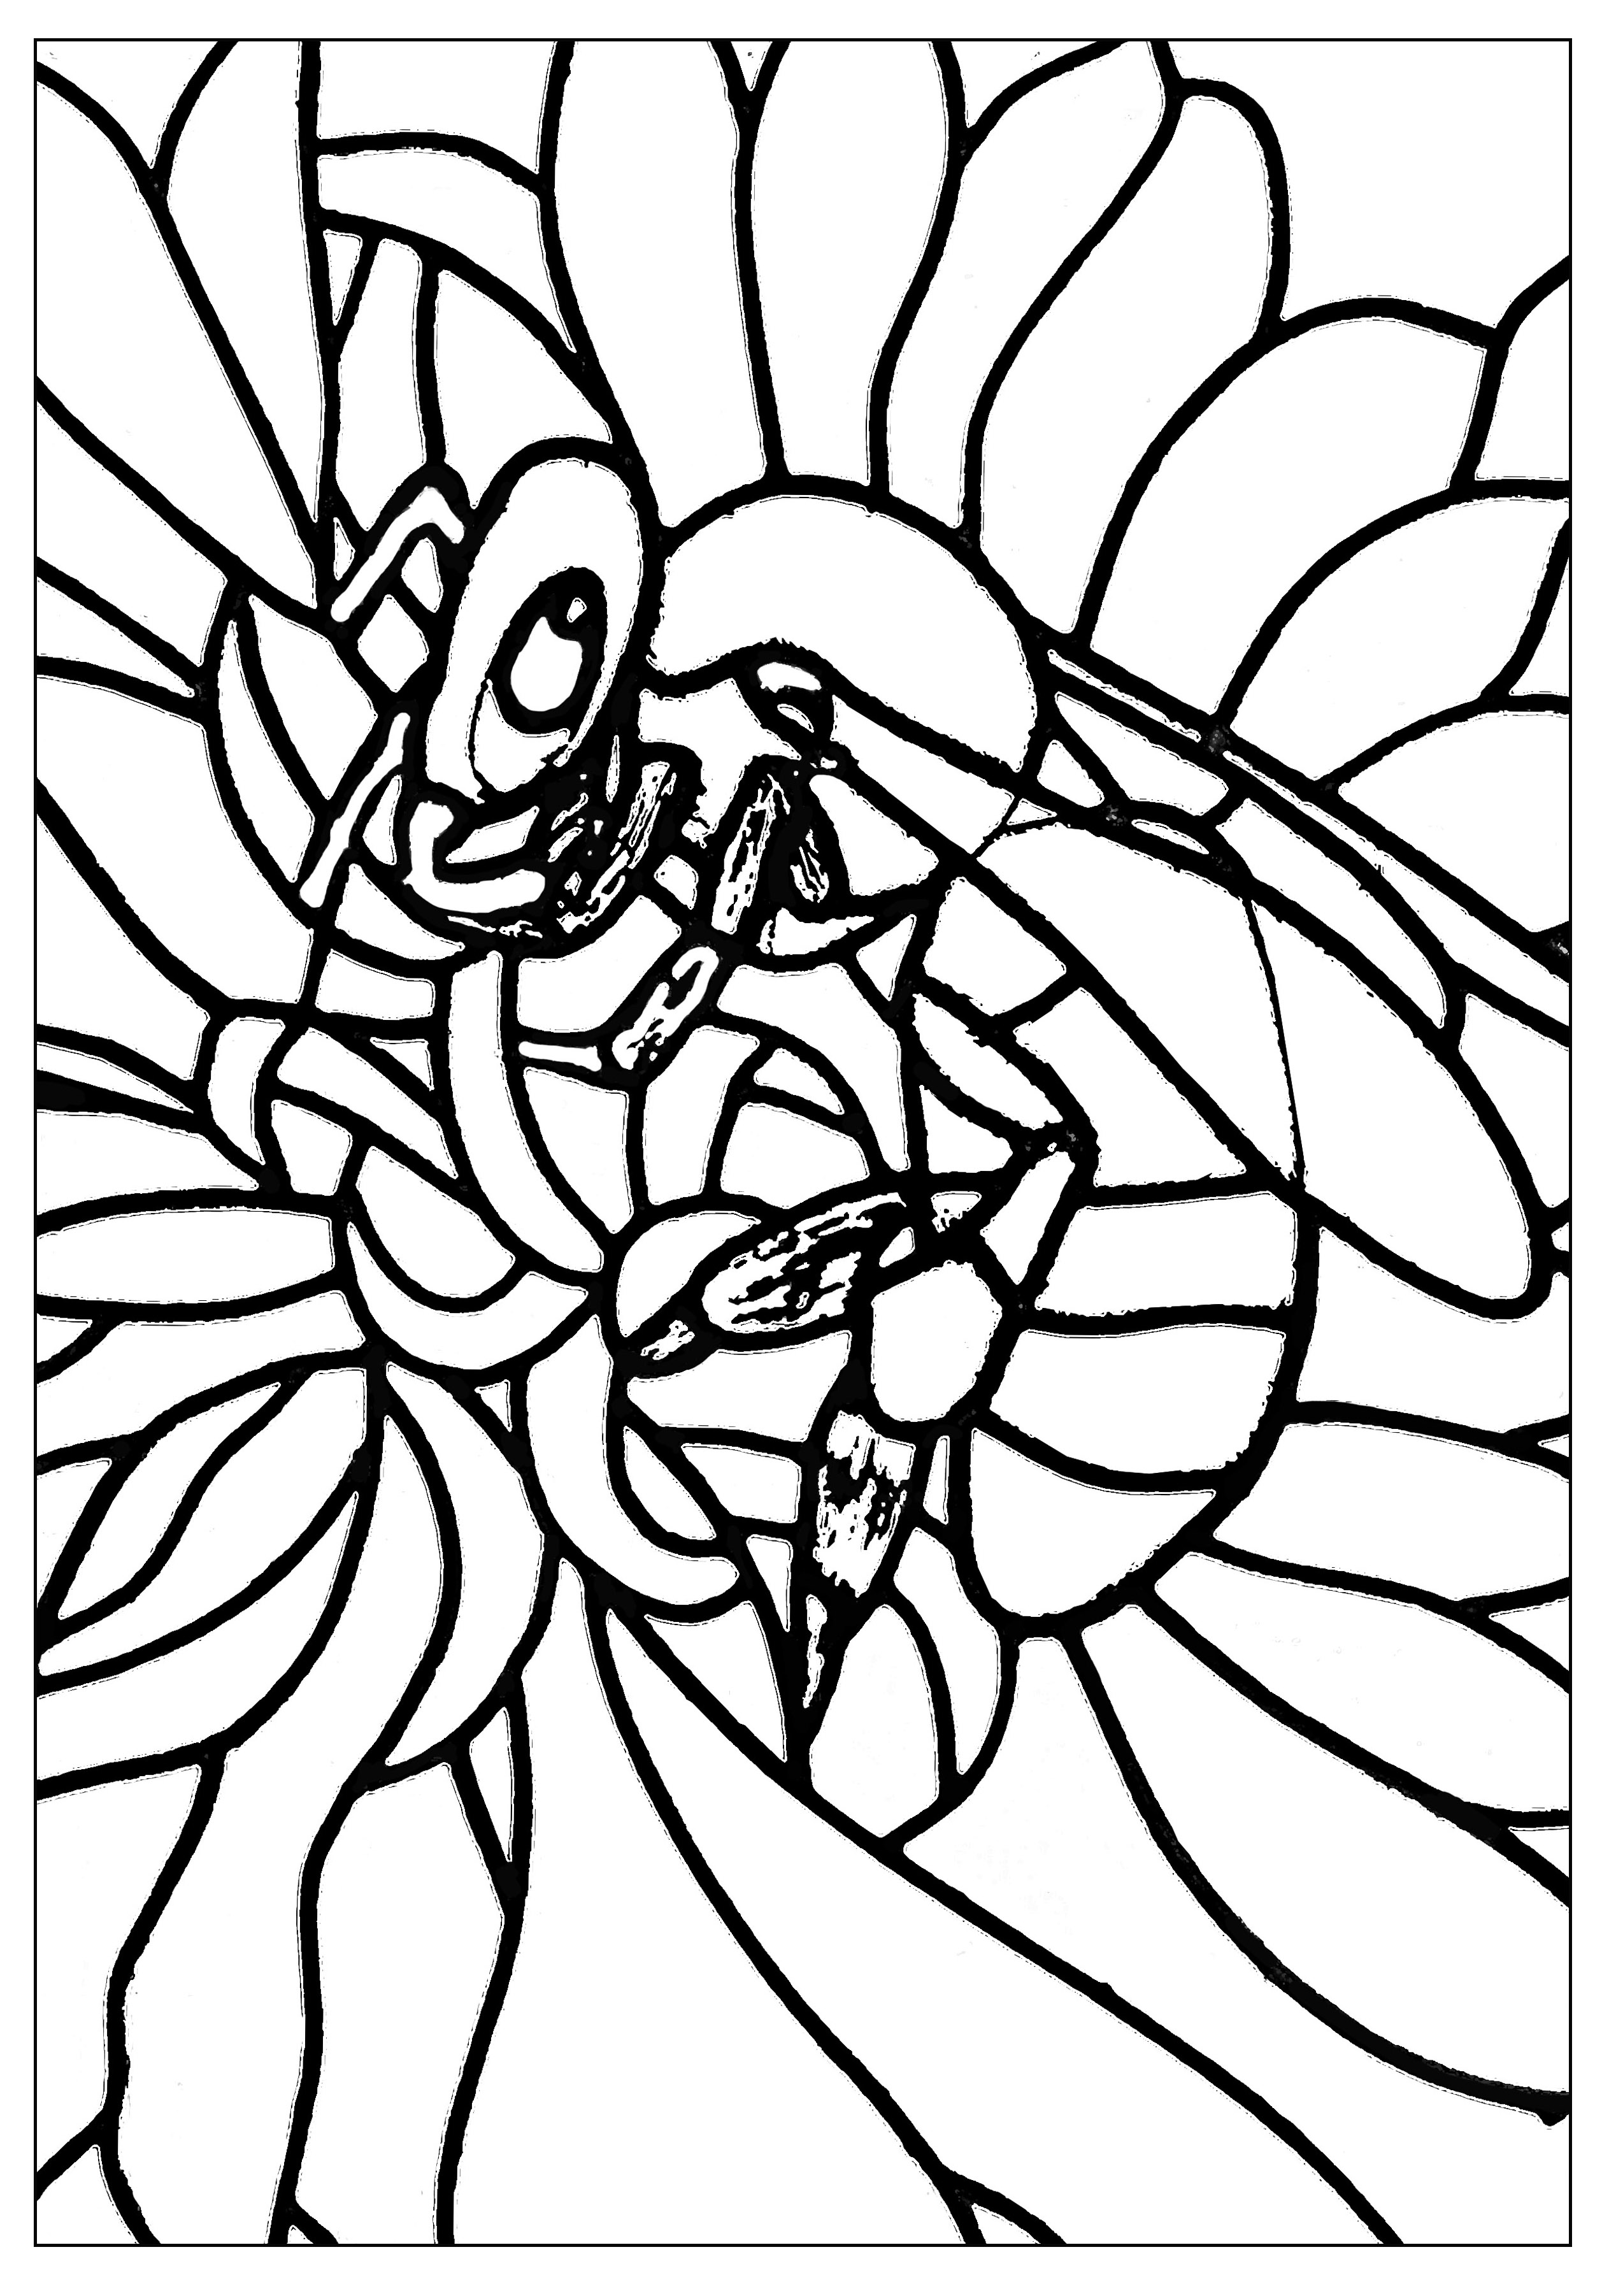 Cute bee to color, with areas with large borders